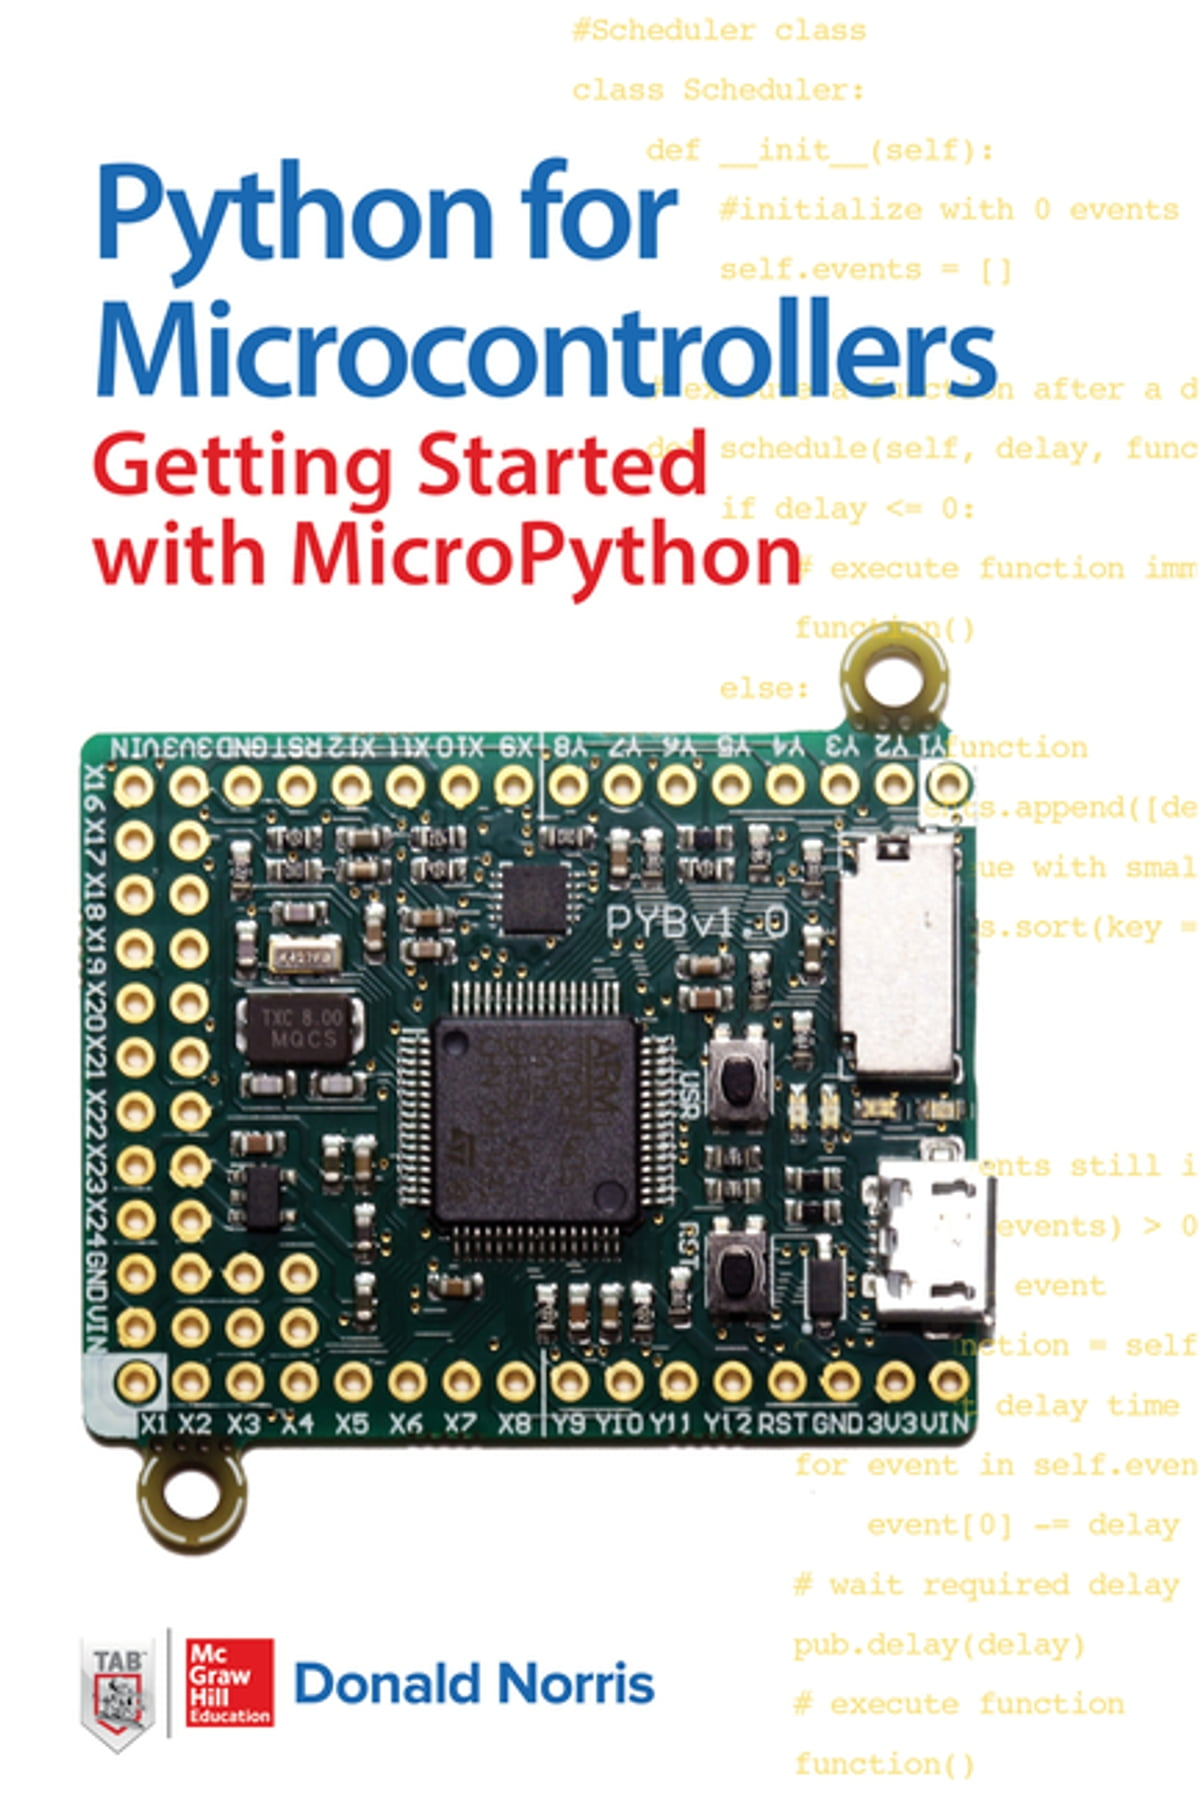 Python For Microcontrollers Getting Started With Micropython Ebook Microcontroller Tutorial 3 5 How To Design The Circuit By Donald Norris 9781259644542 Rakuten Kobo